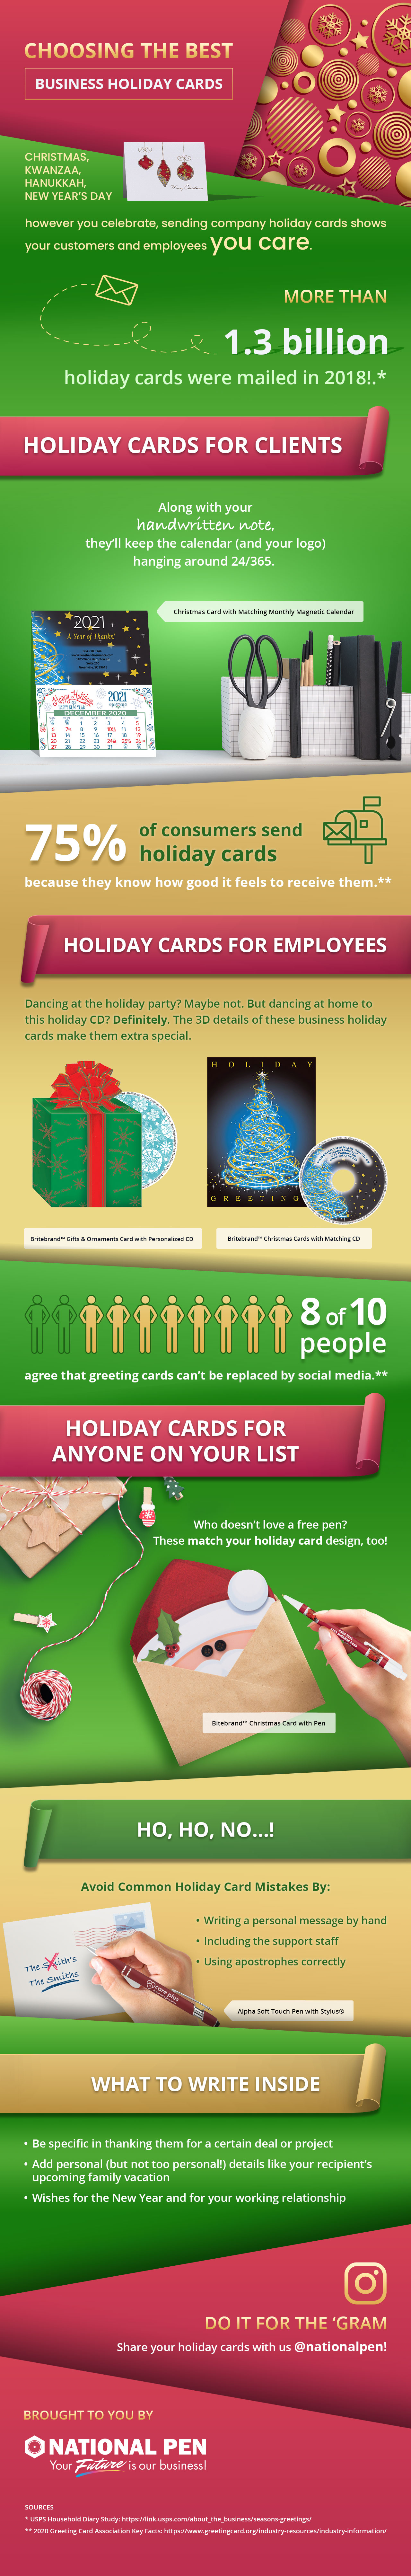 Business Holiday Card Ideas 2020 Best